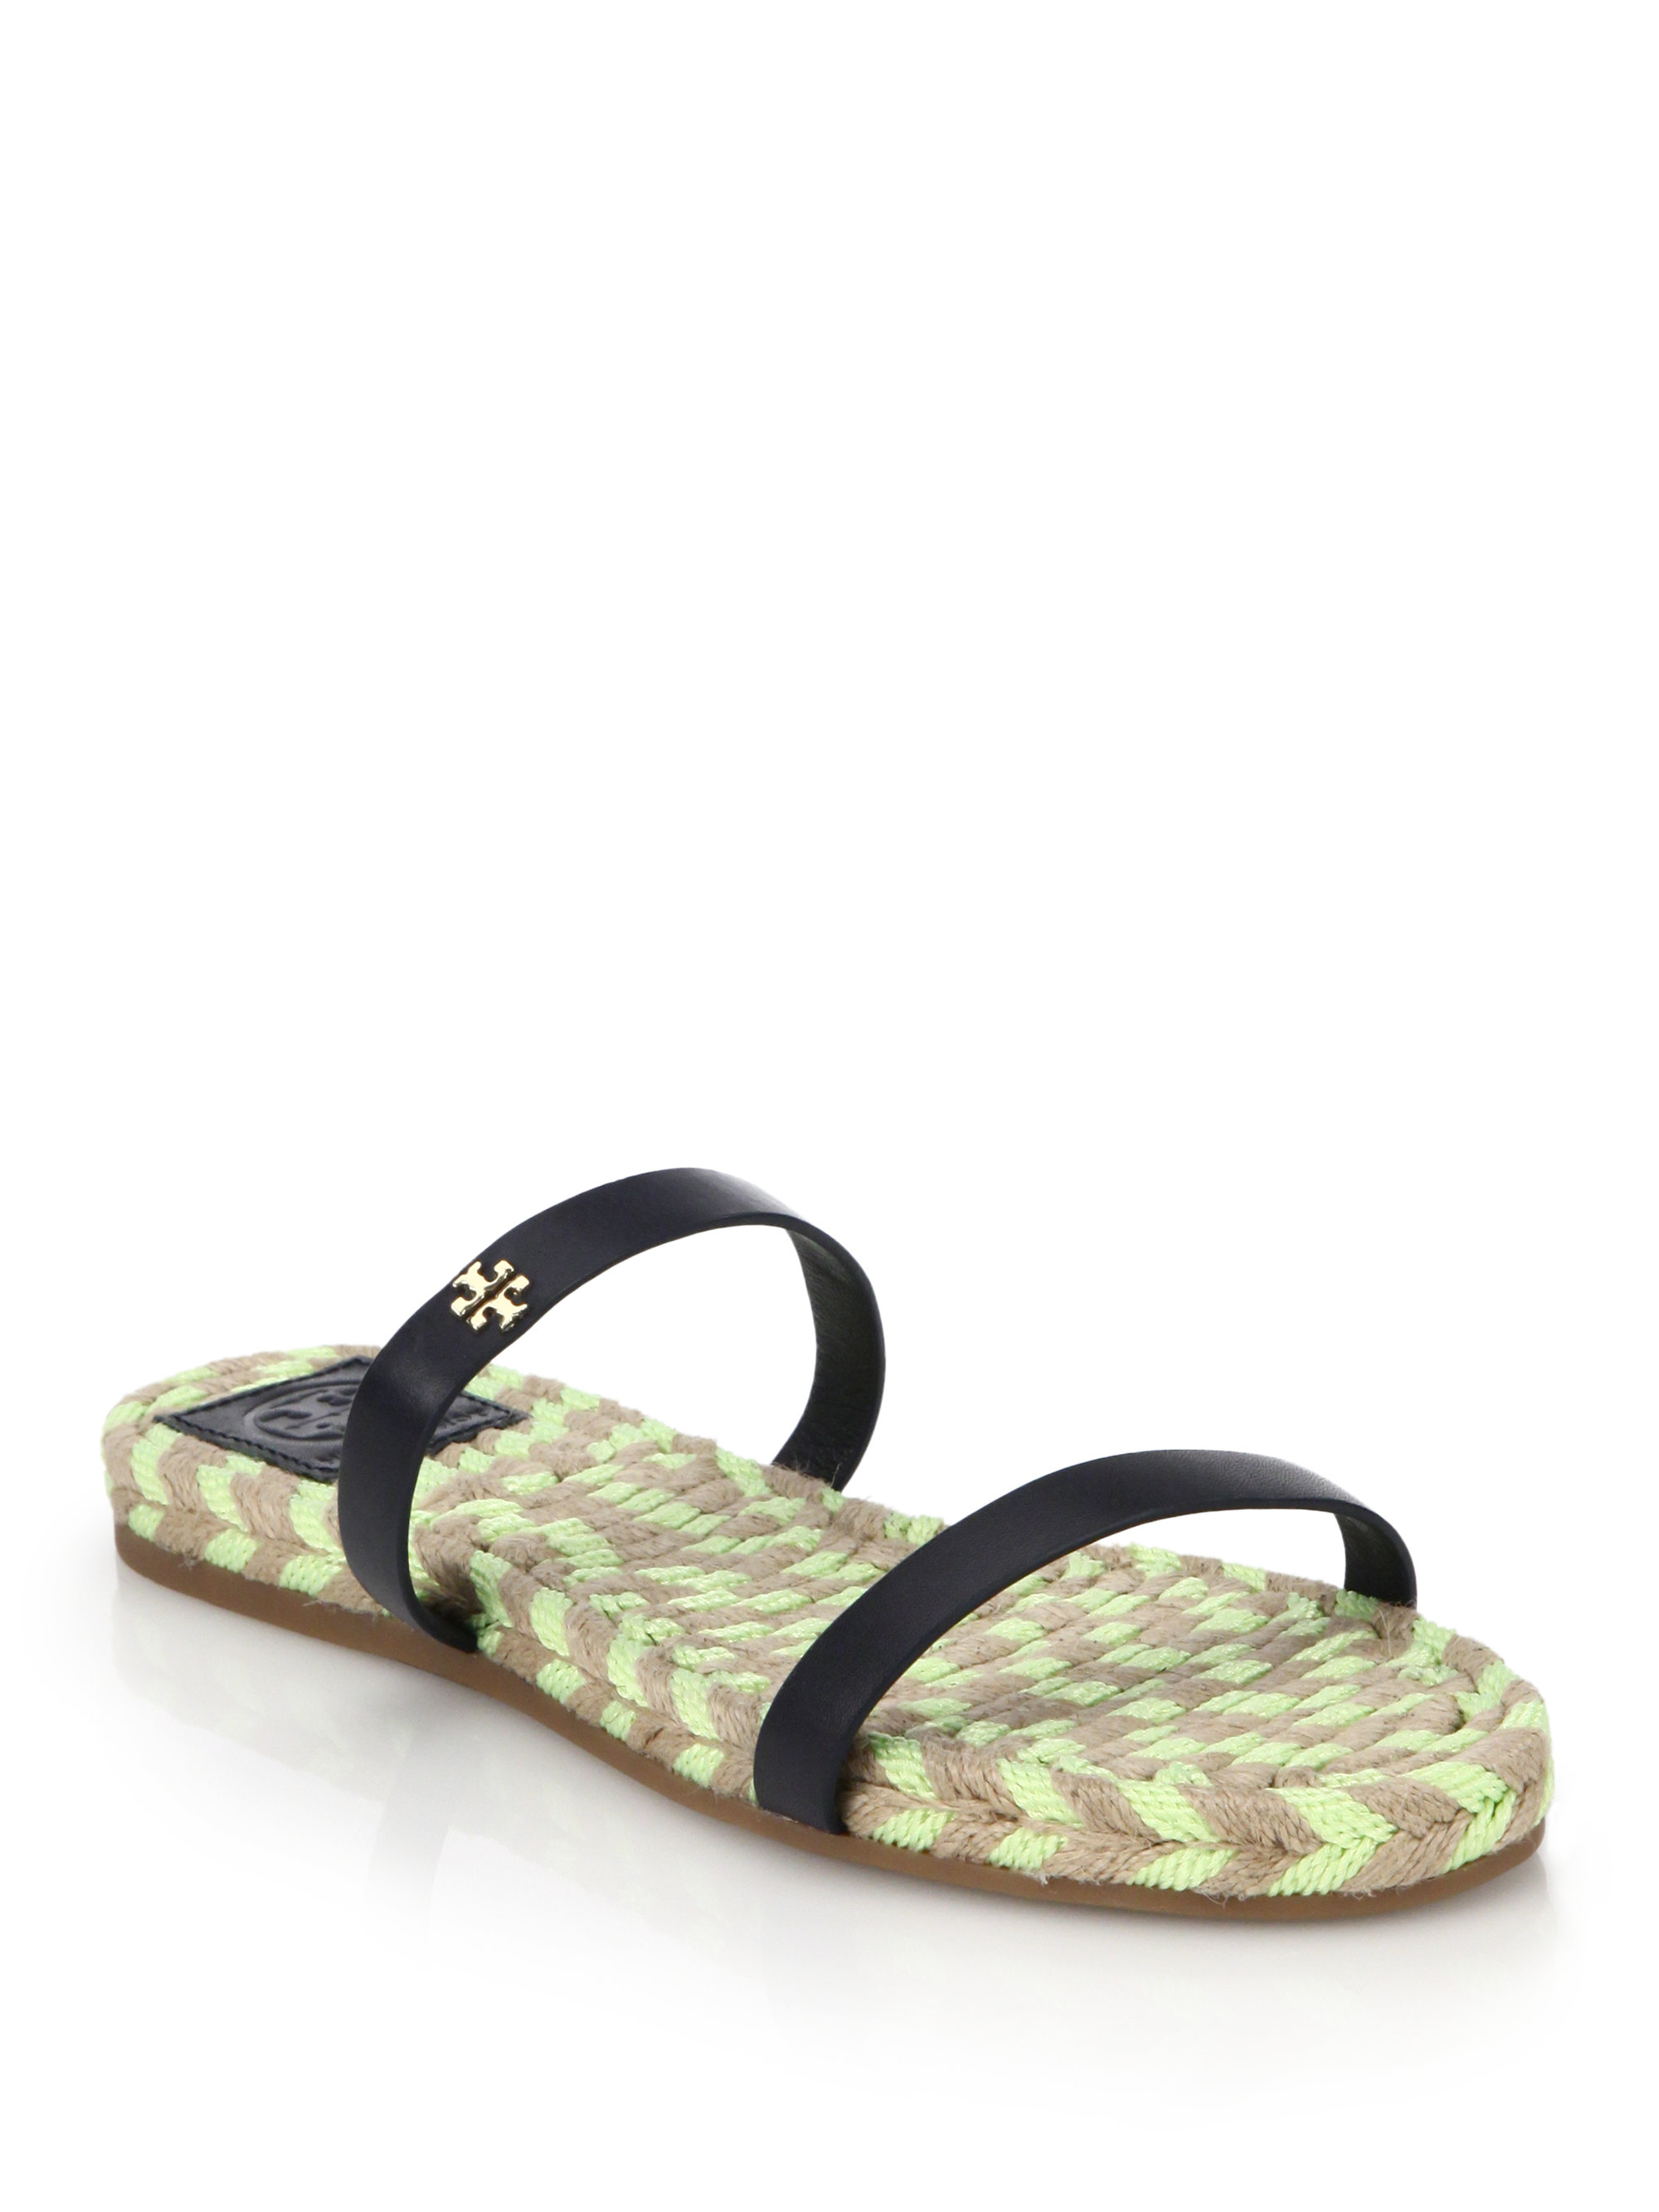 Tory Burch Leather Espadrille Sandals cheap classic 9j5g0R5